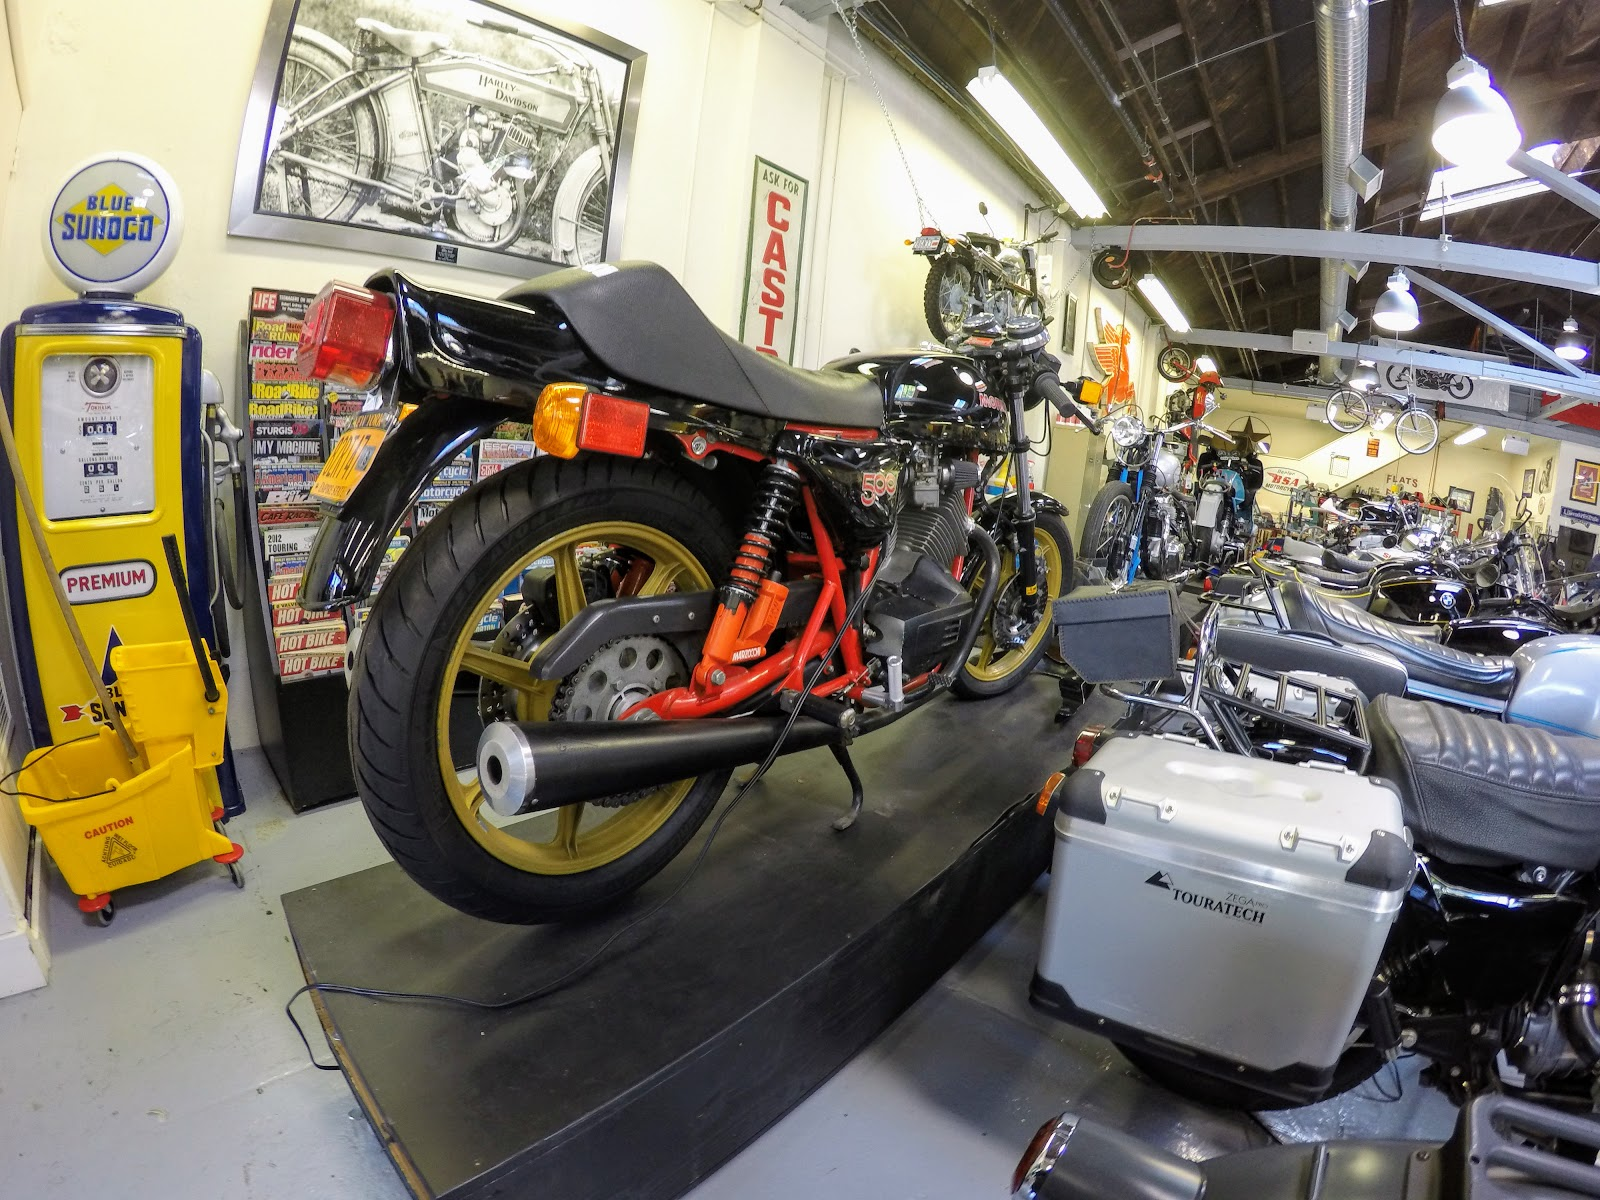 NYDUCATI presents Billy Joel's 20th Century Cycles Moto Morini